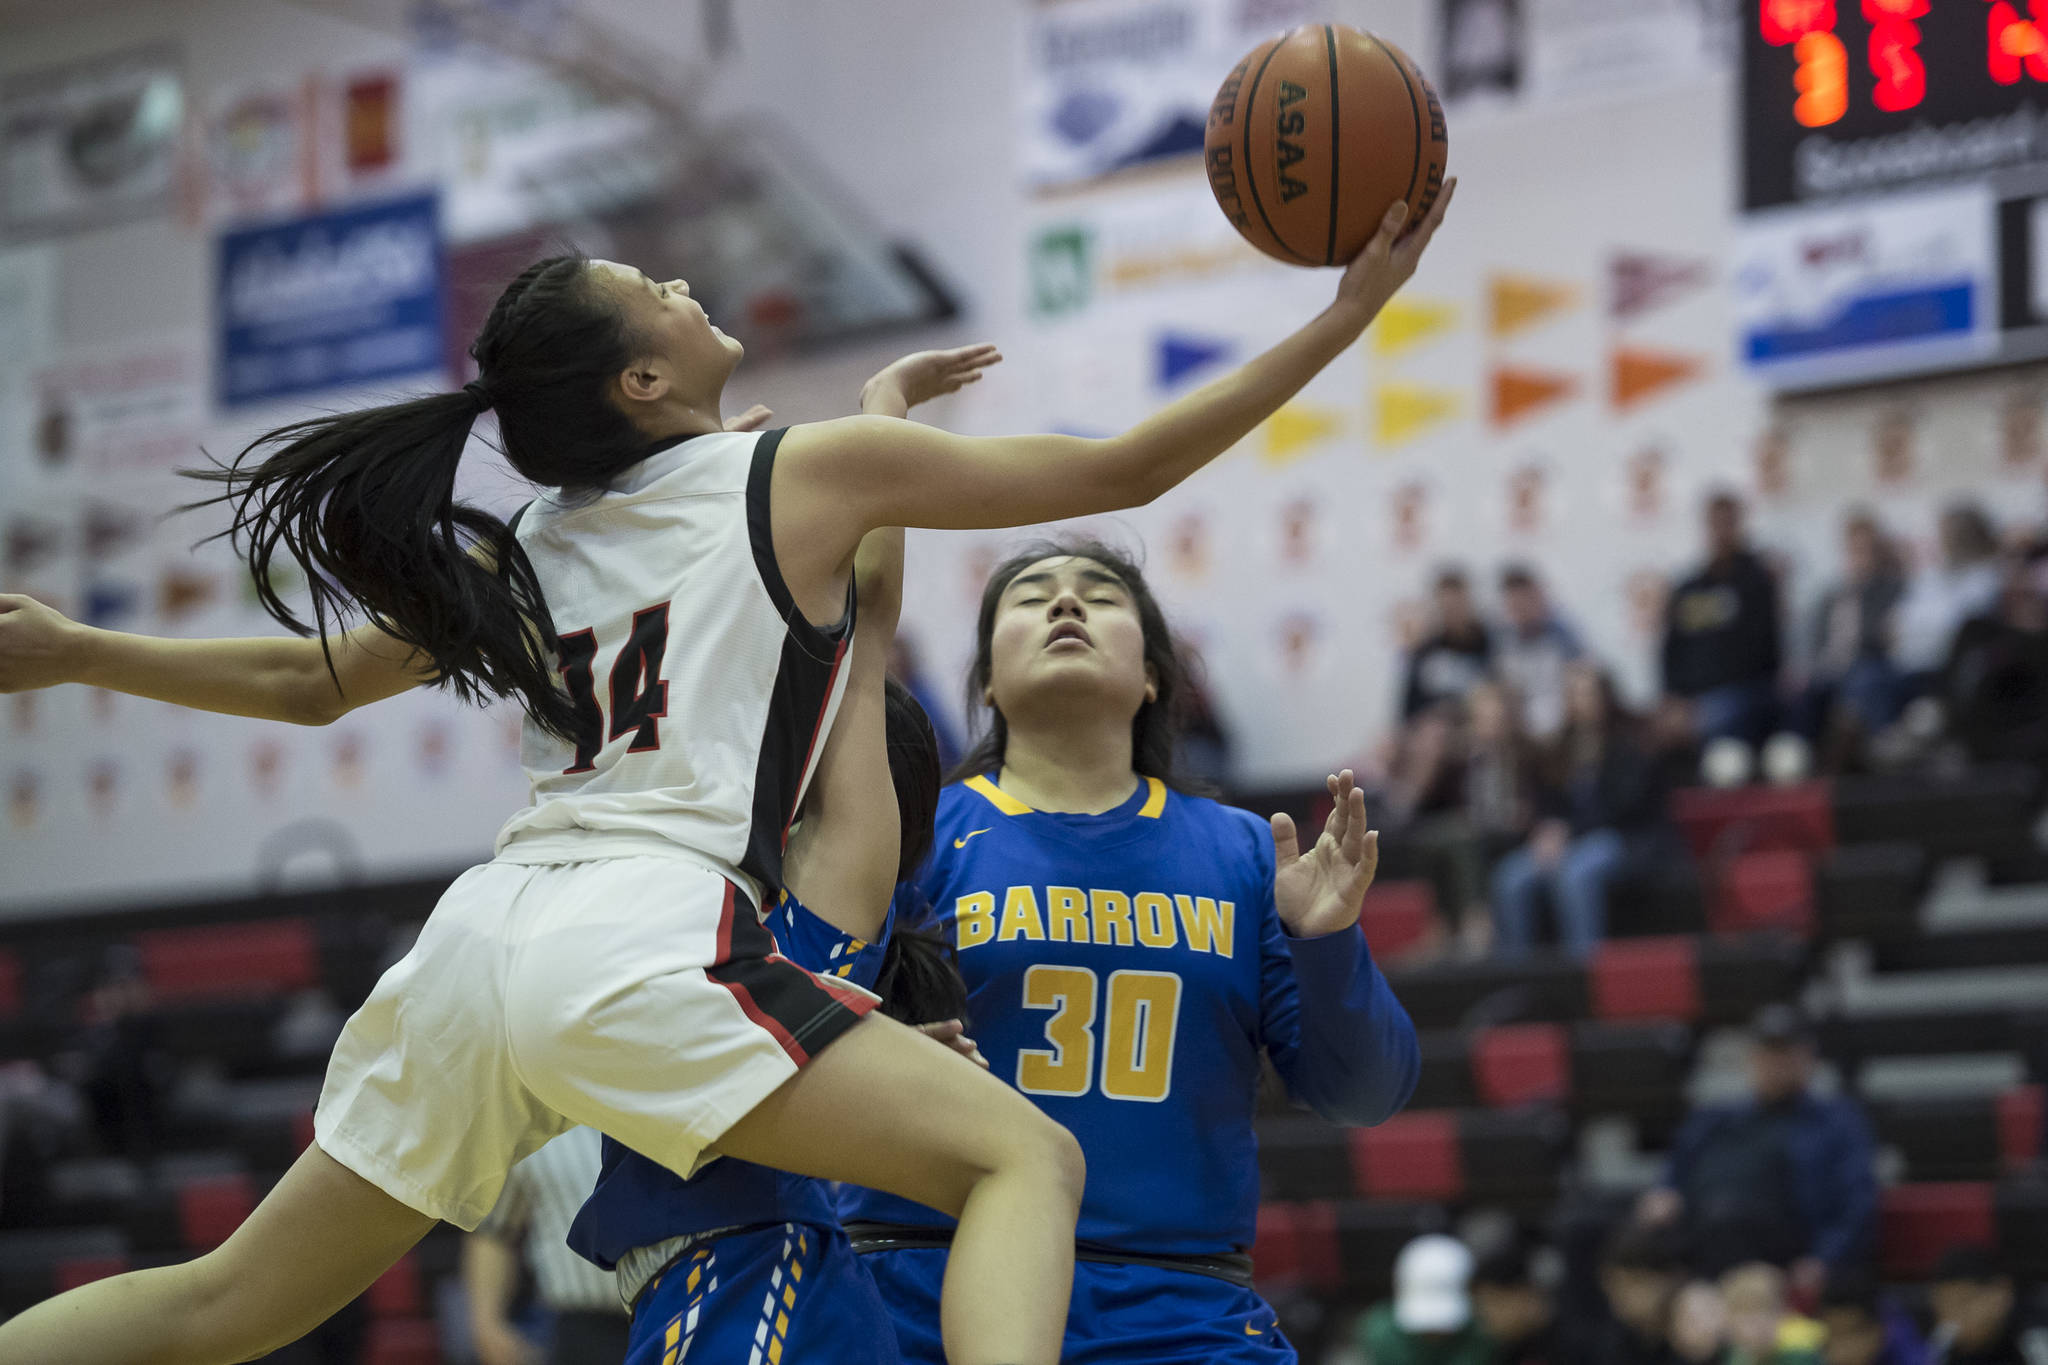 Juneau-Douglas' Alyxn Bohulano, left, drives to the basket against Barrow's Trinity Manu at the Princess Cruises Capital City Classic at Juneau-Douglas High School on Friday, Dec. 28, 2018. (Michael Penn | Juneau Empire)